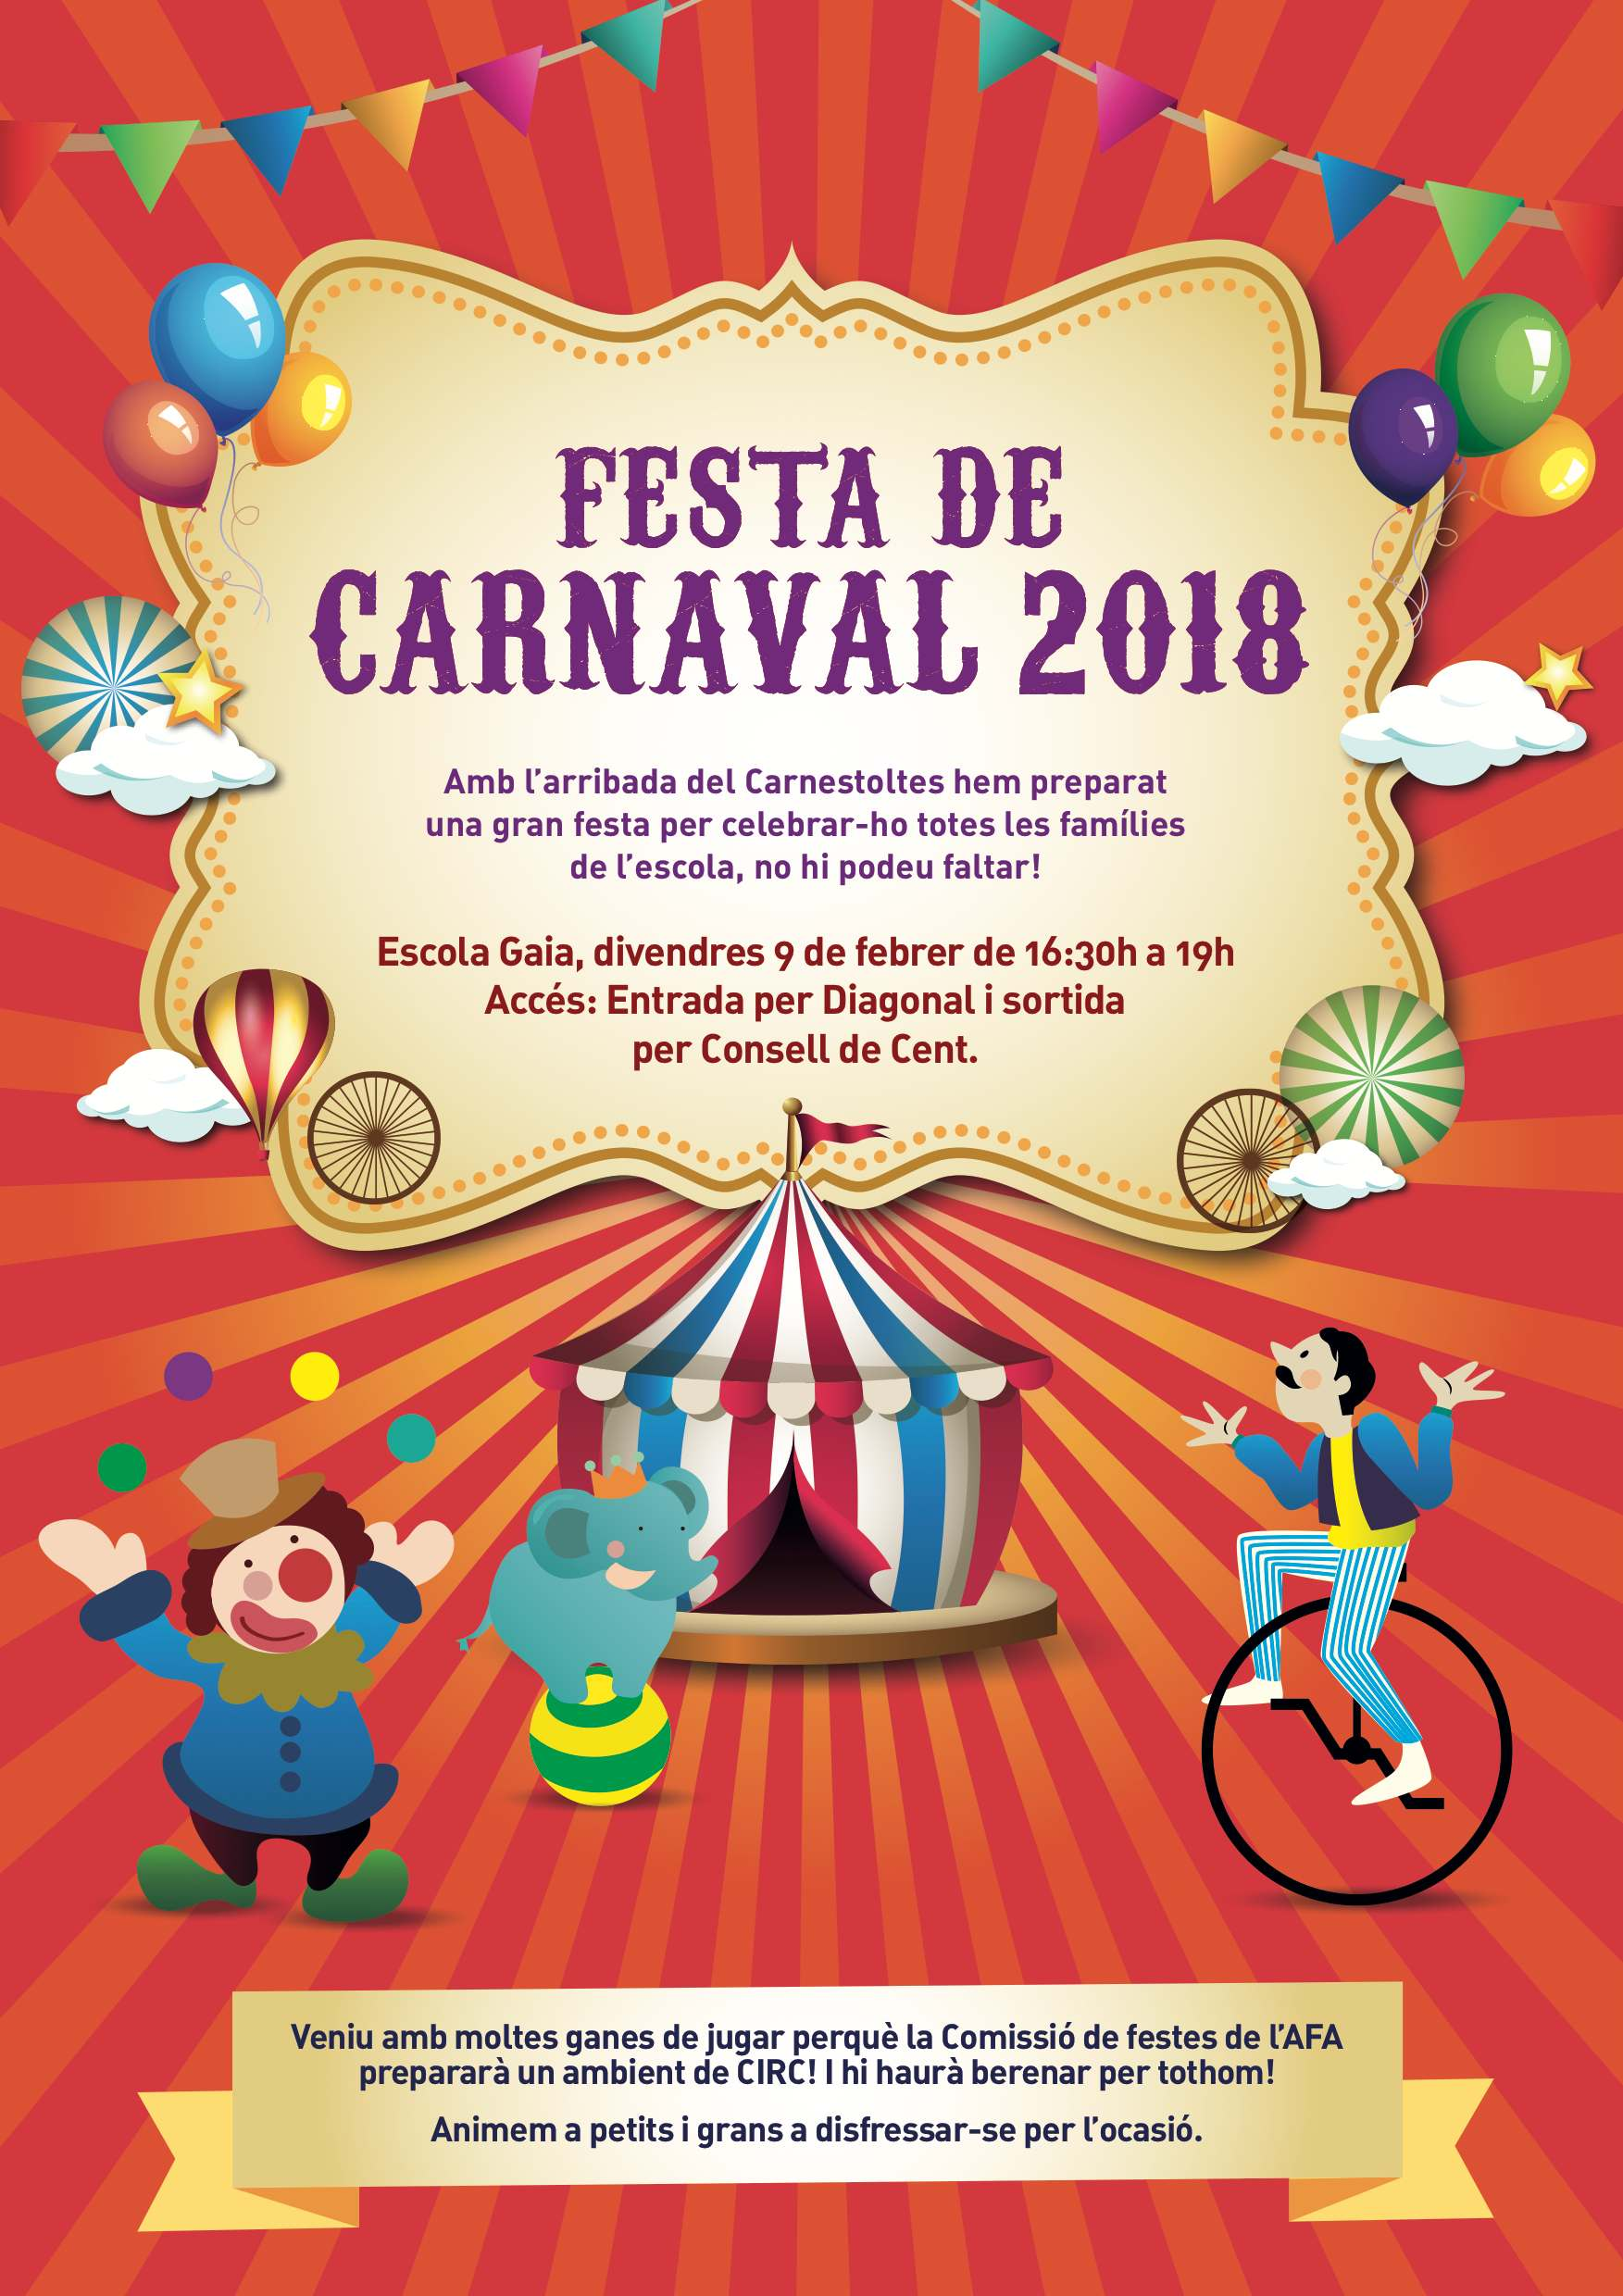 CartelCarnaval_2018_OK_small.jpg